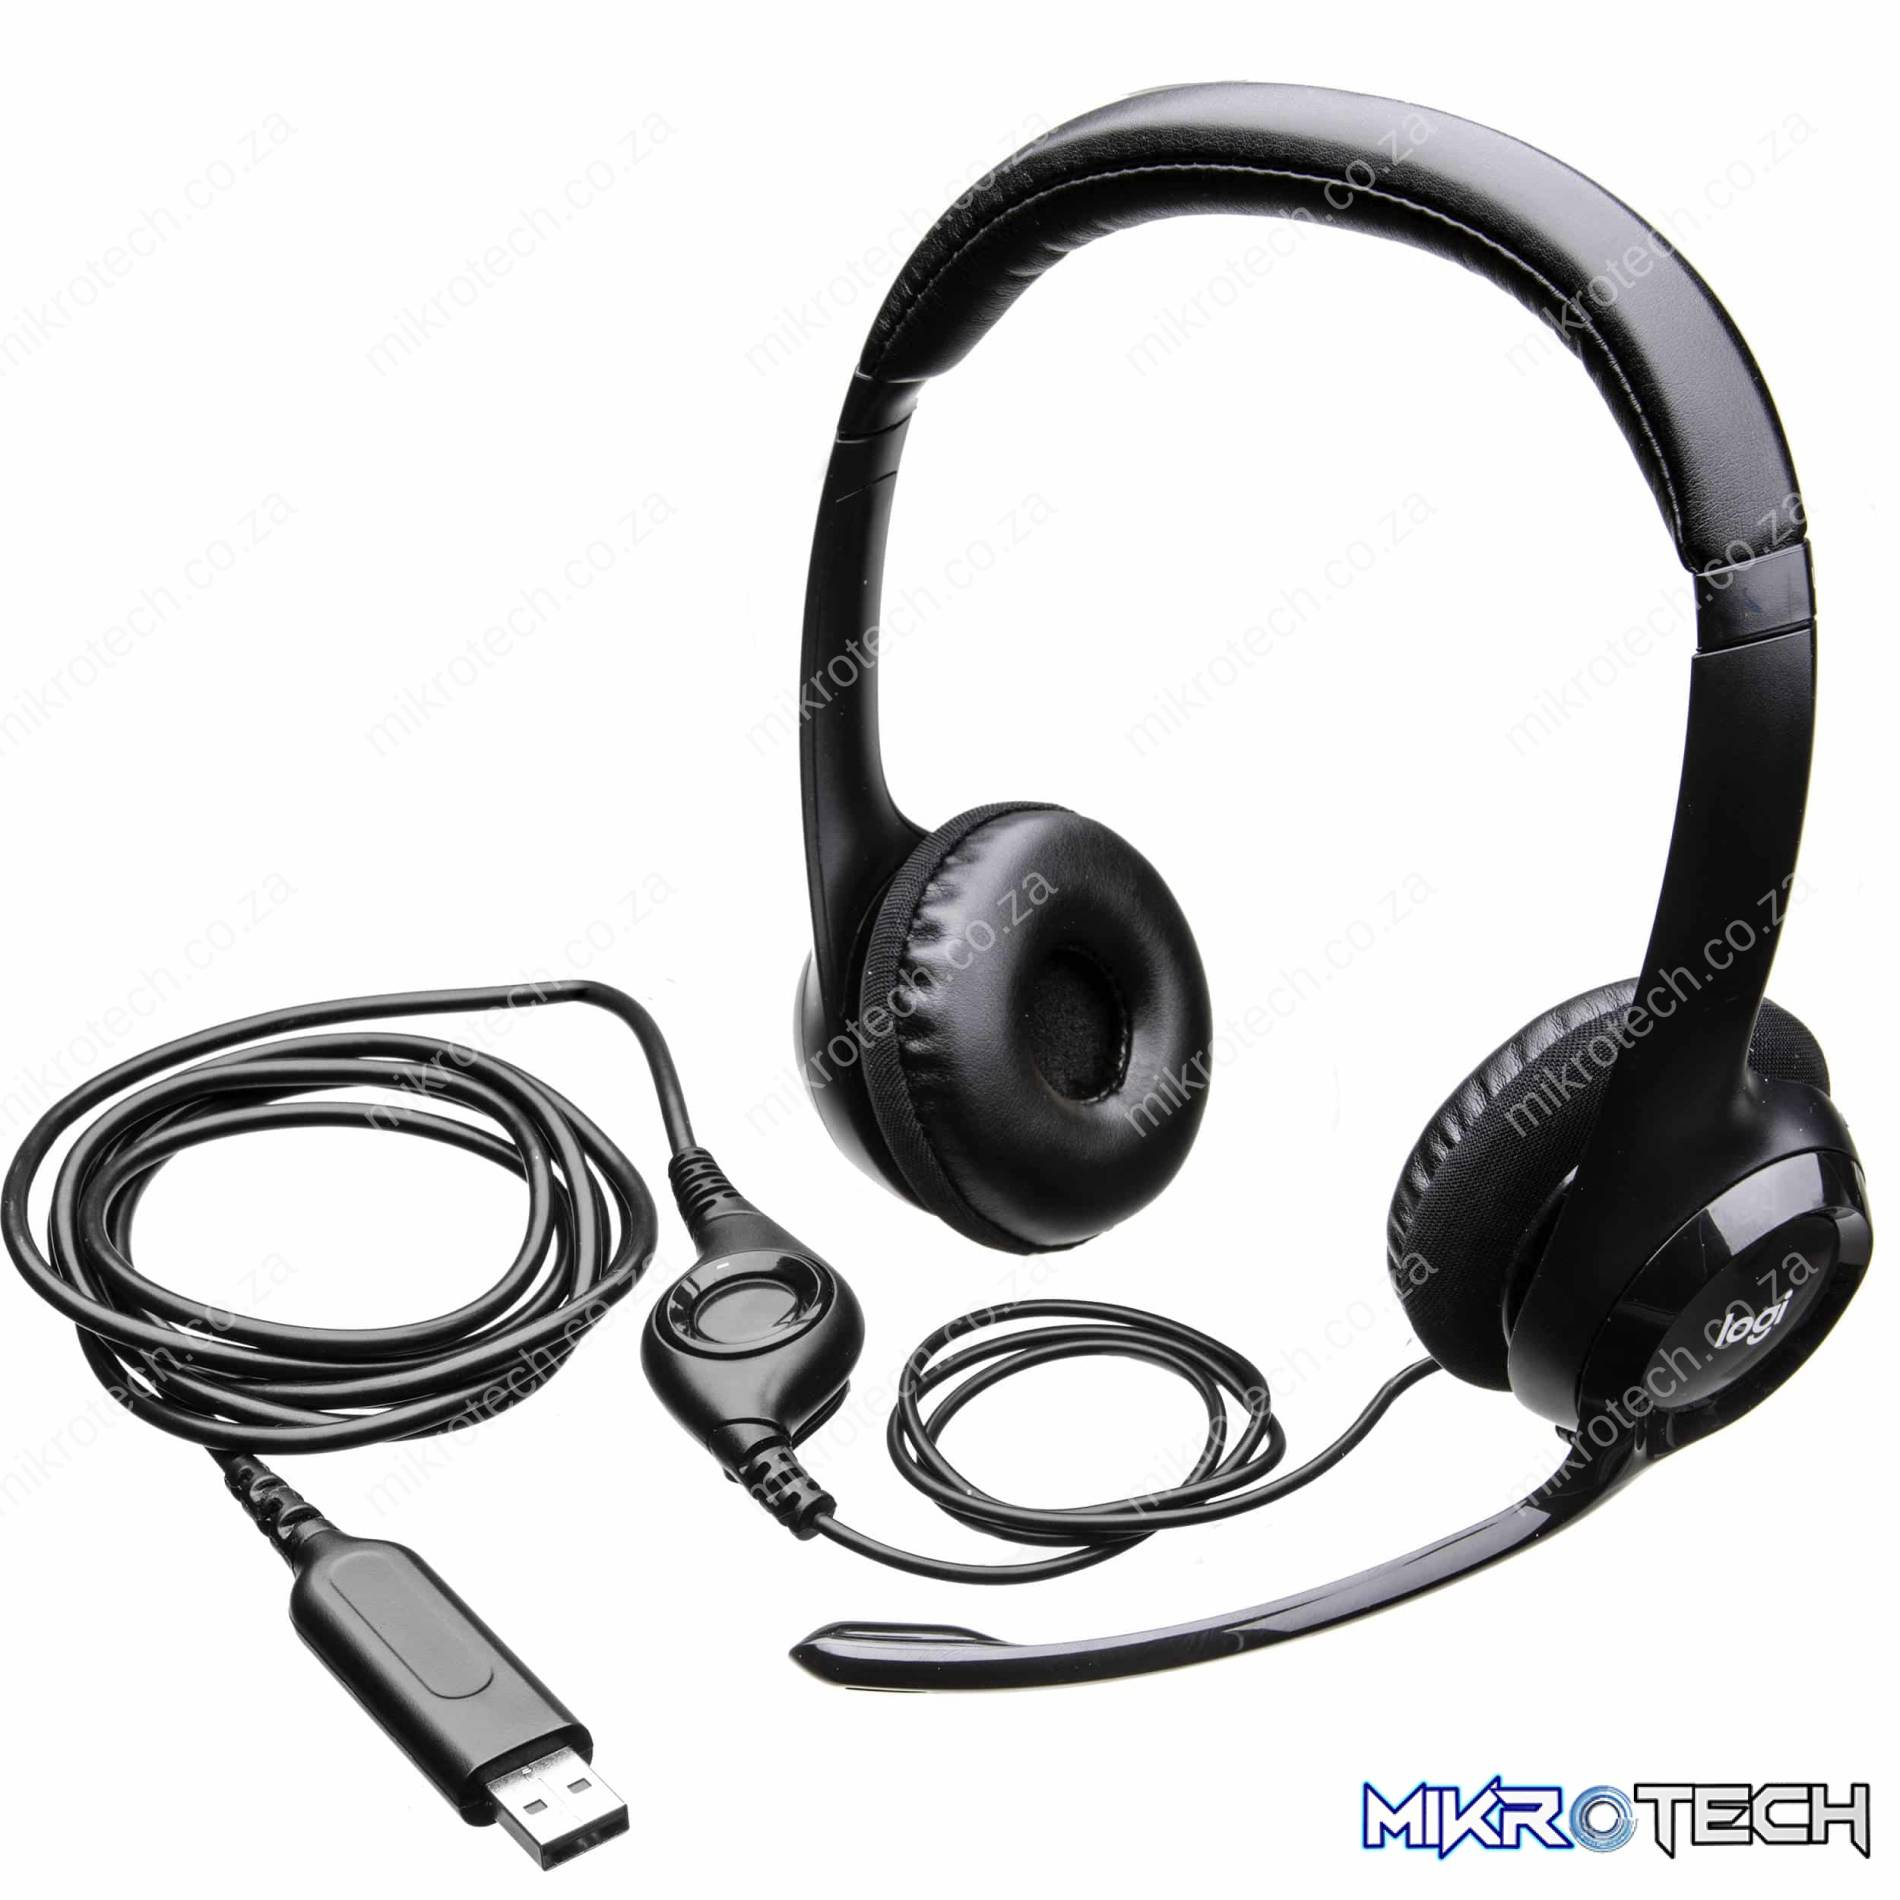 Logitech H390 USB Headset - Noise Cancelling Microphone, Digital Audio, In Line Volume Control